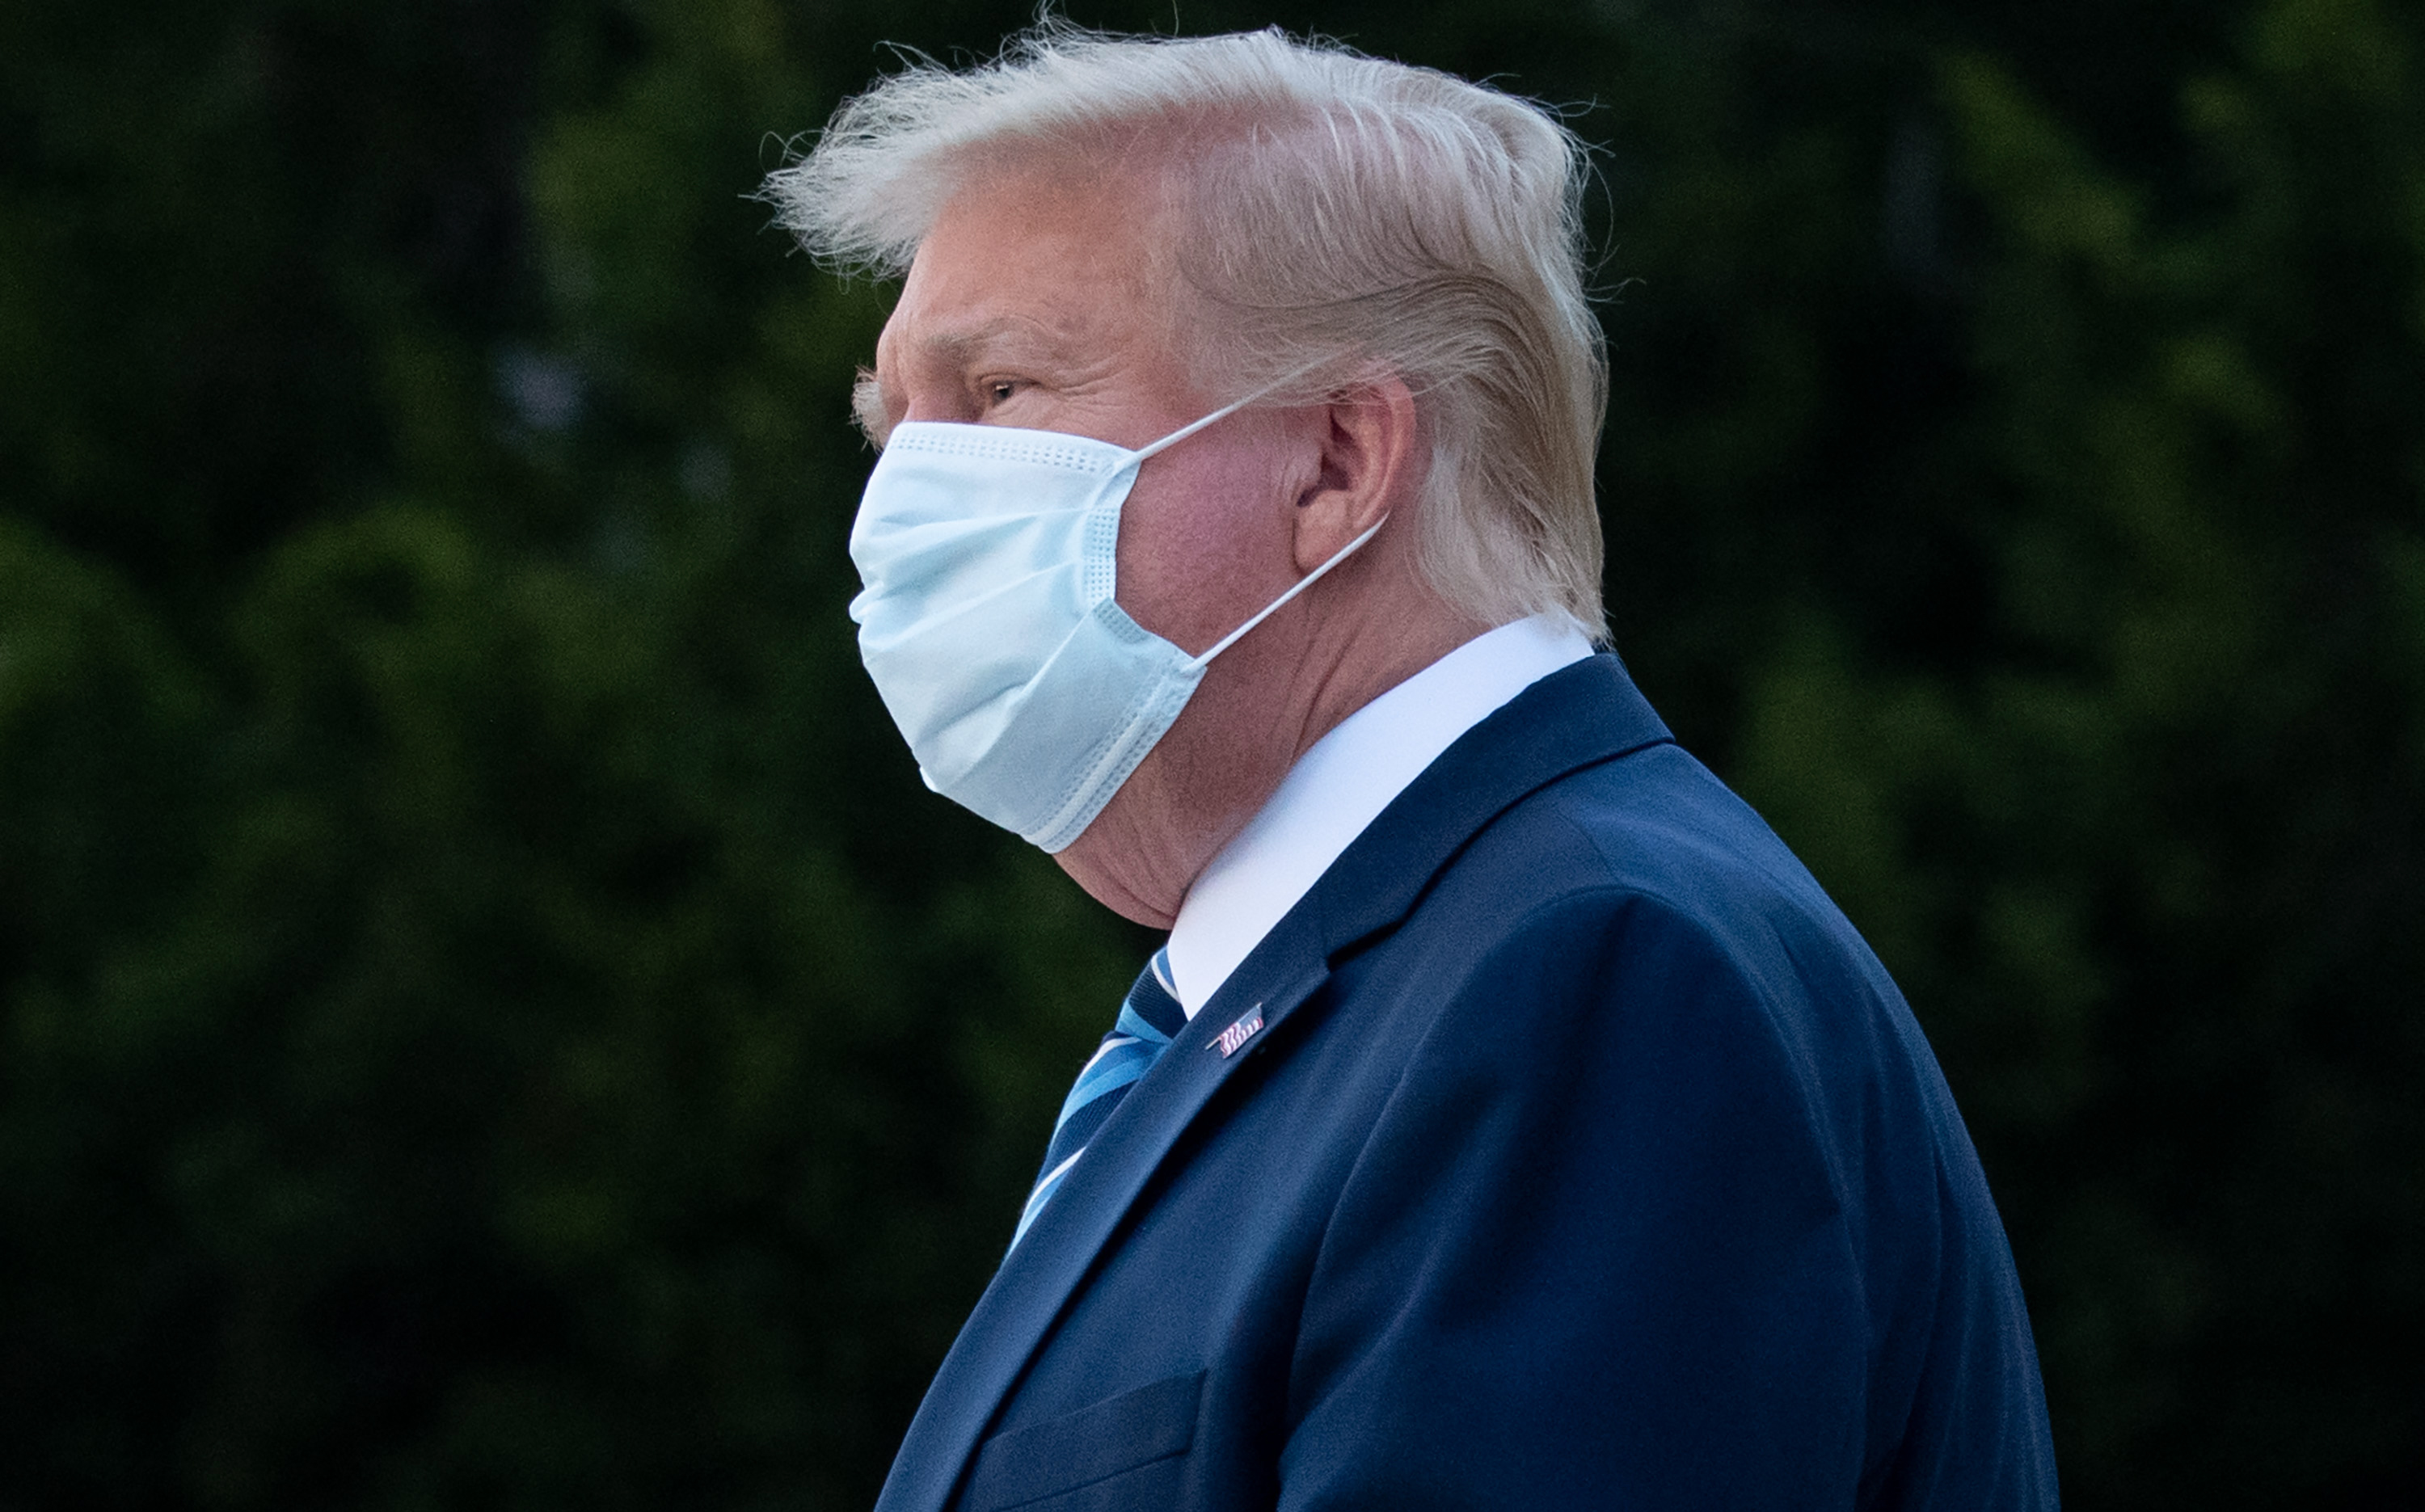 President Trump Deletes COVID Tweet, But Not For Calling It 'Chinese Virus'